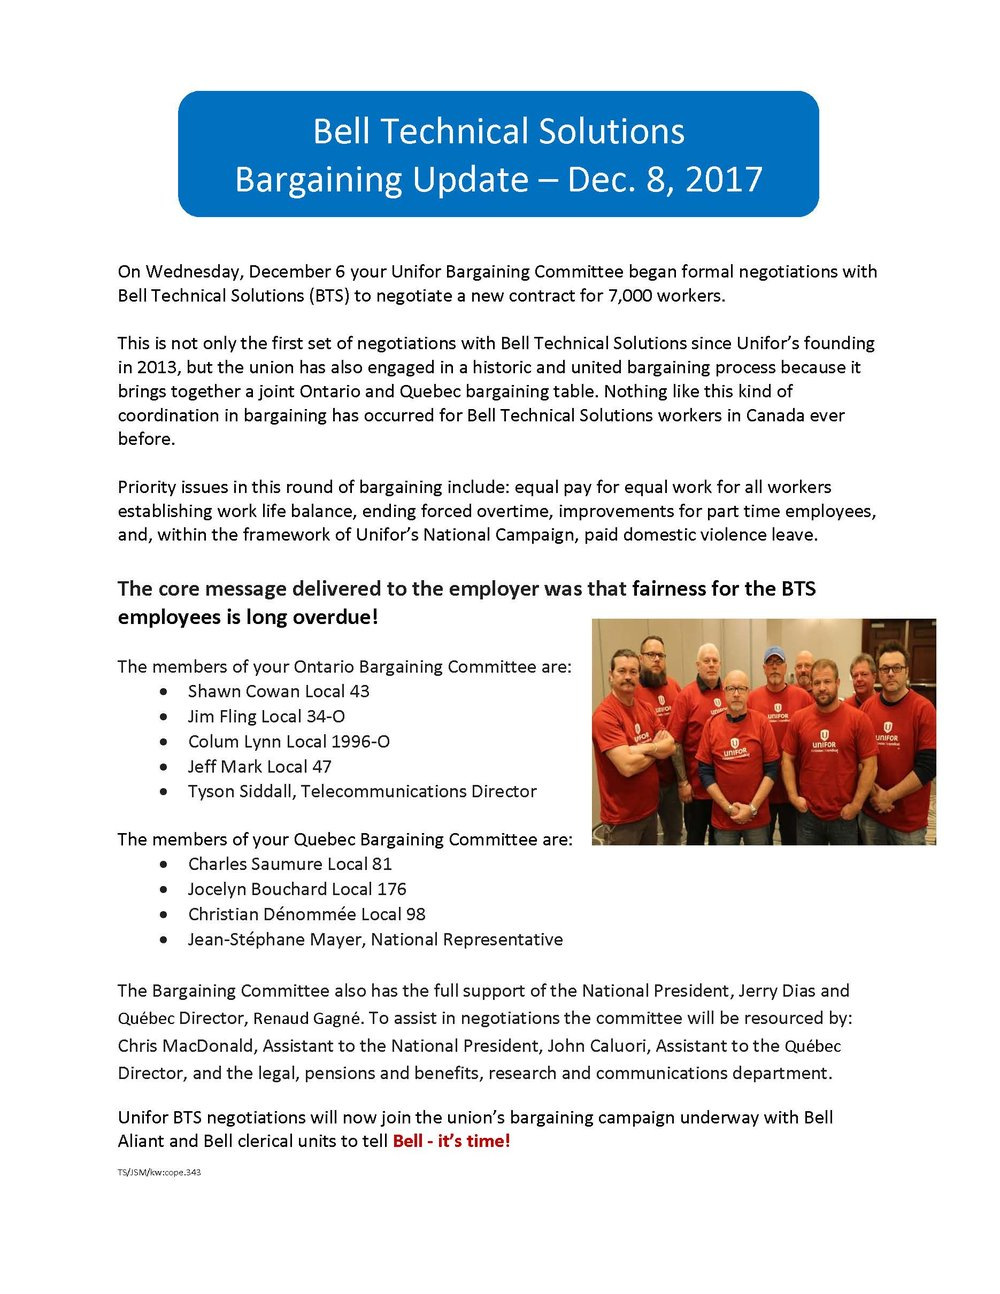 BTS Bargaining Update - Dec 8, 2017.jpg